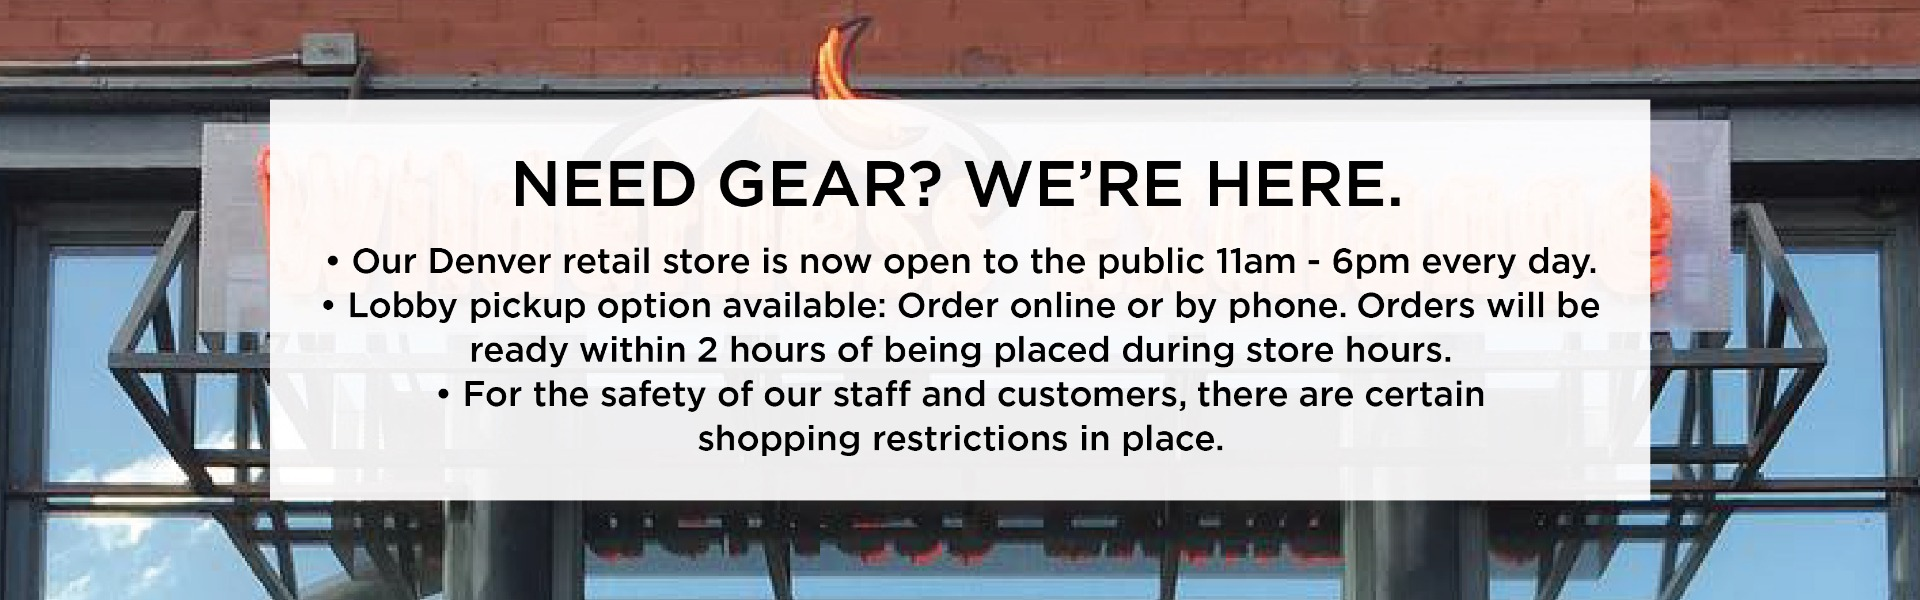 Need Gear? We're Here!